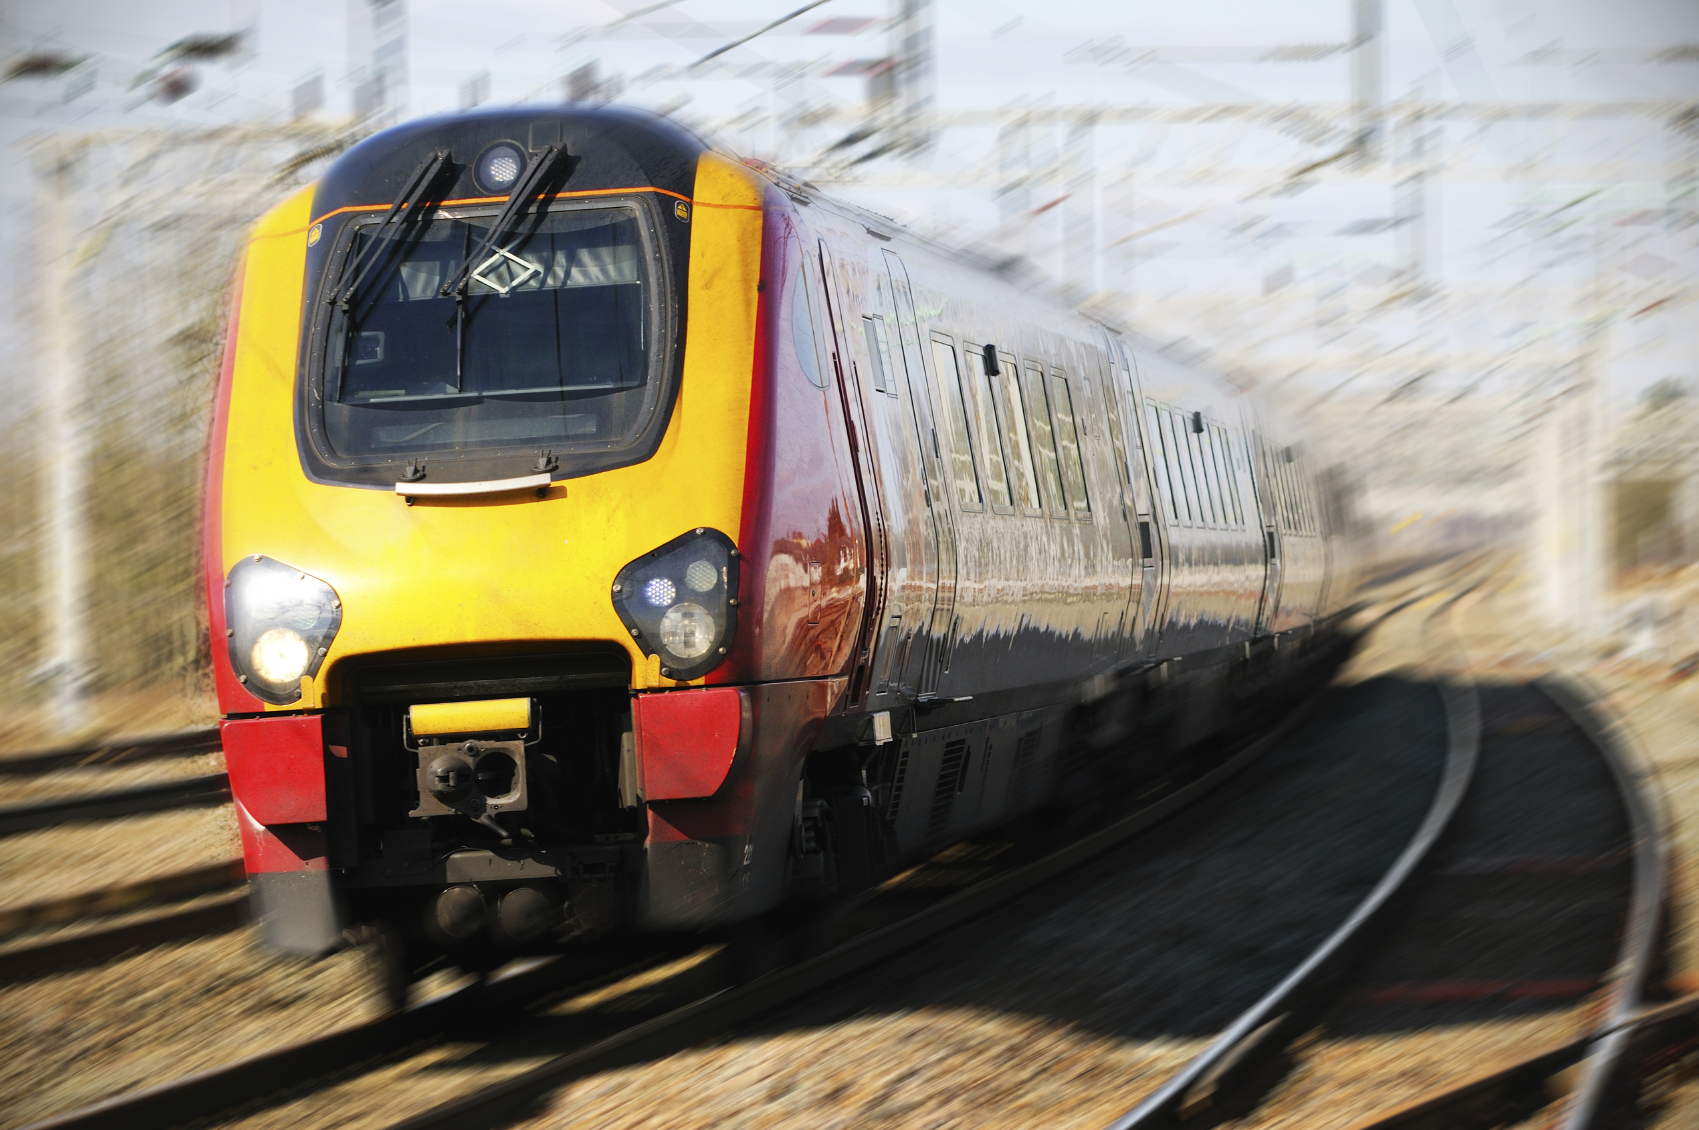 virgin trains recruitment presented new candidates with a great opportunity